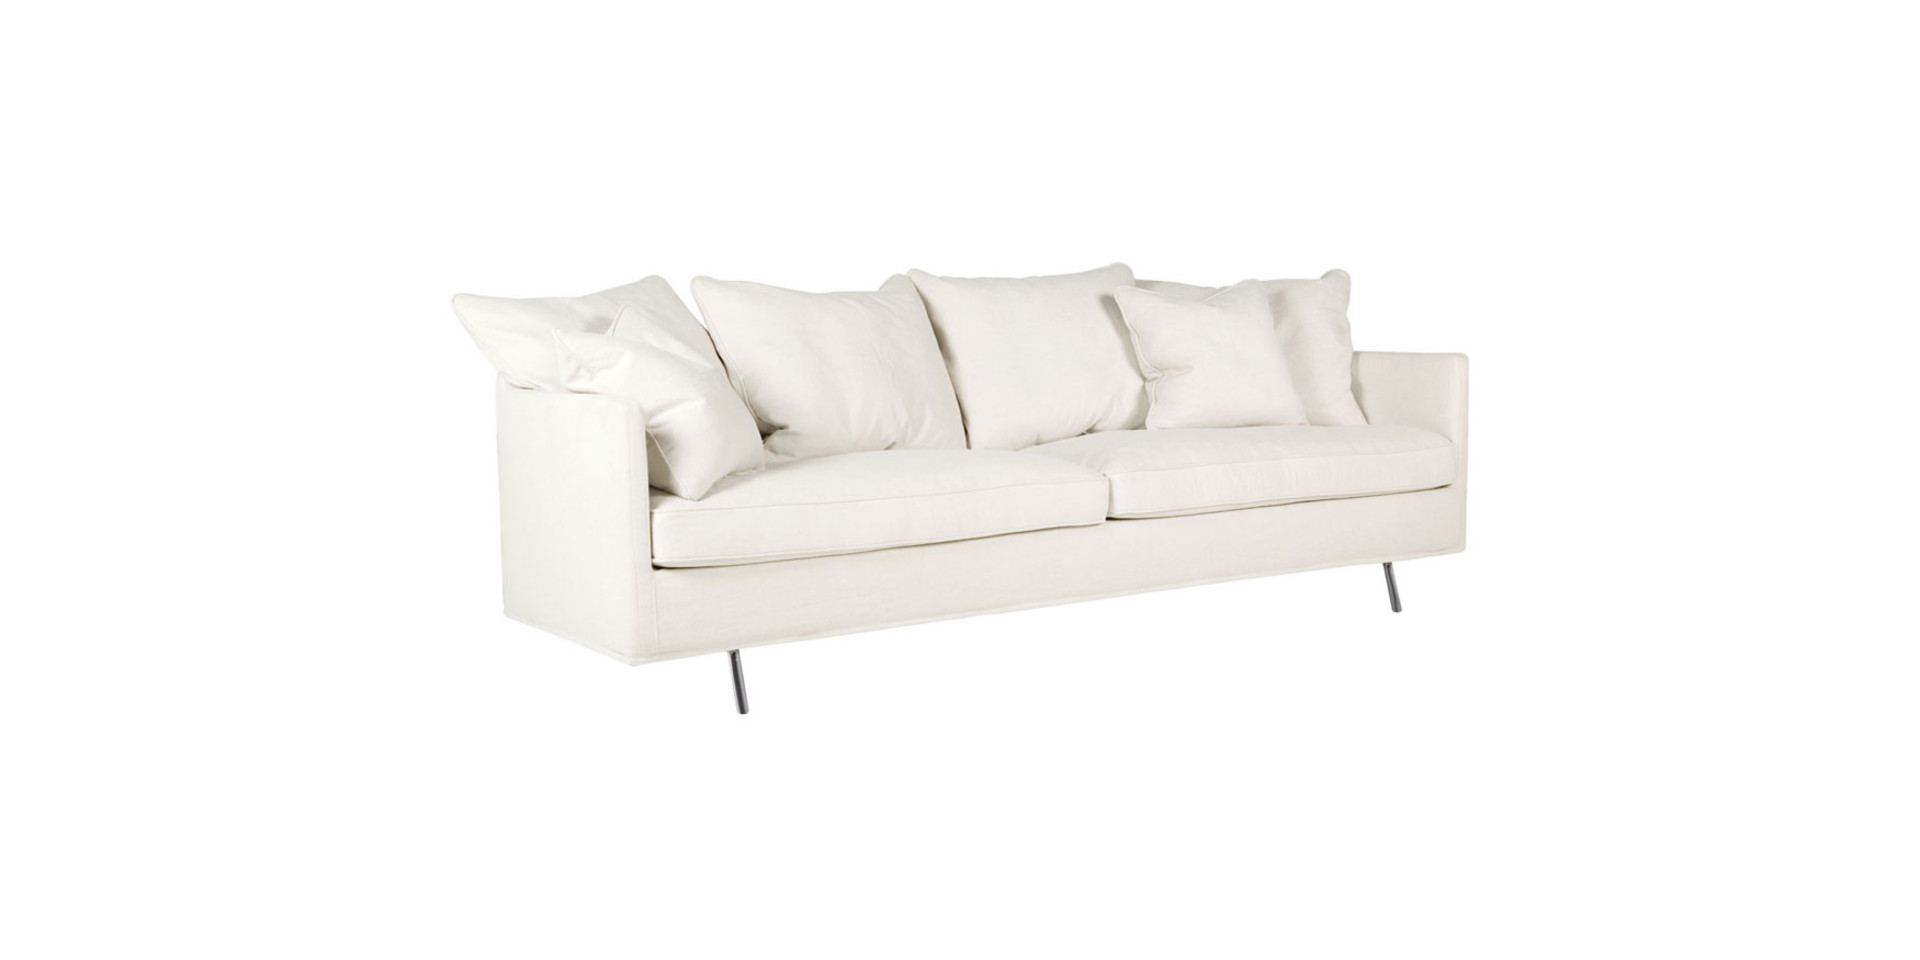 sits-julia-canape-3seater_caleido1419_natur_2